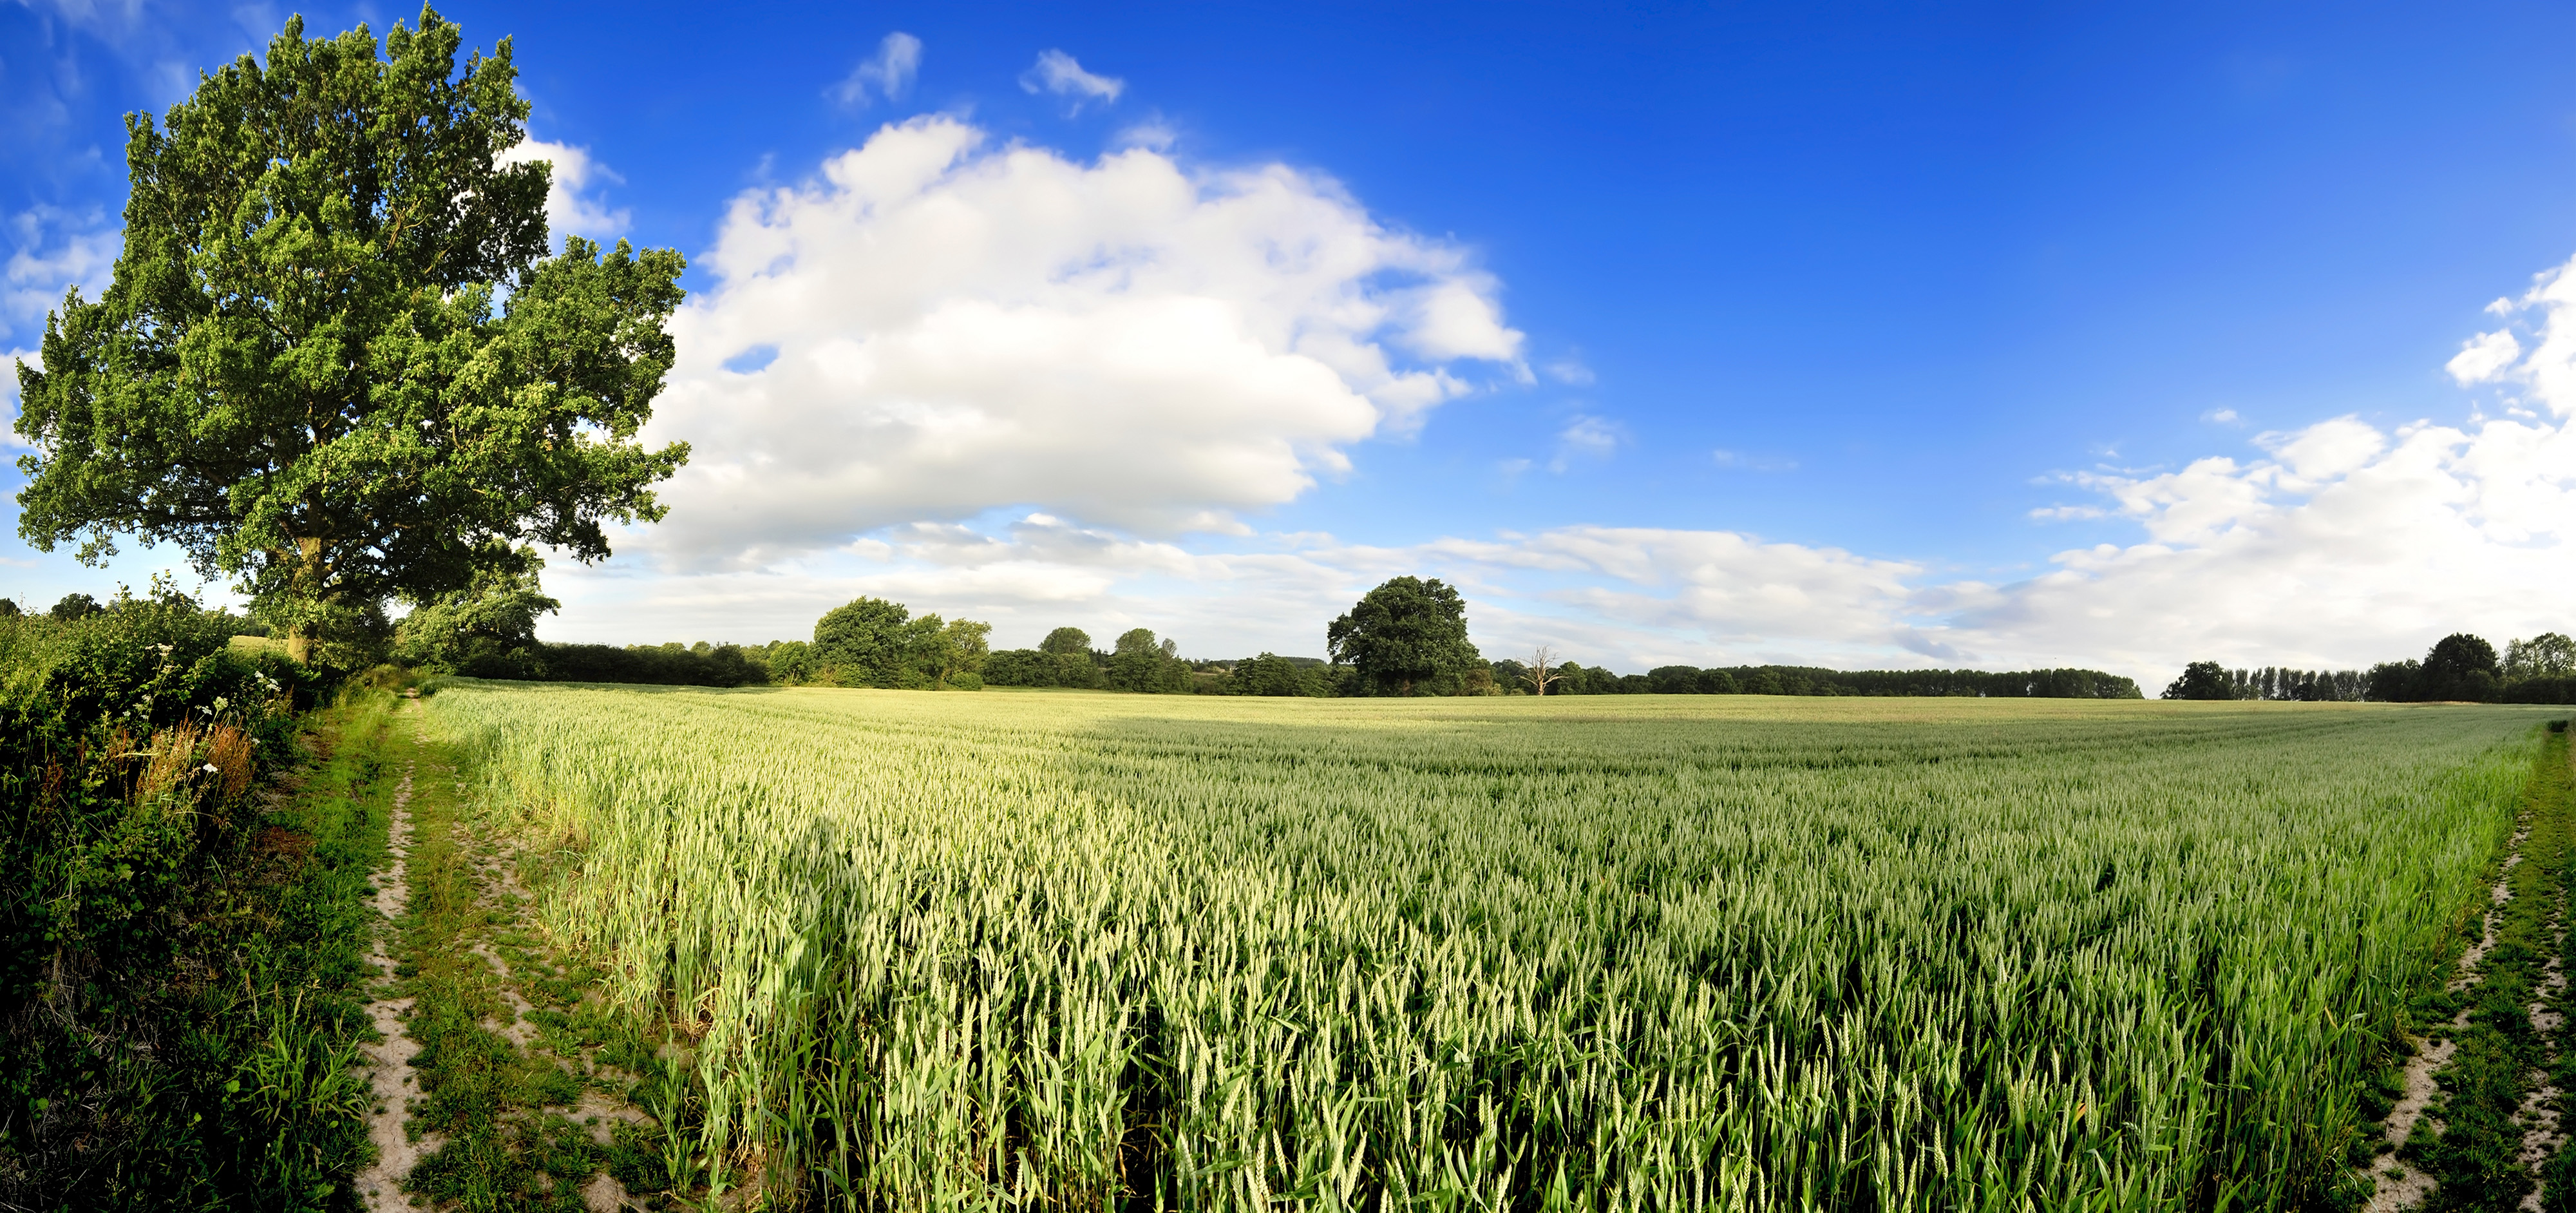 Barley Fields with Granulated Lime